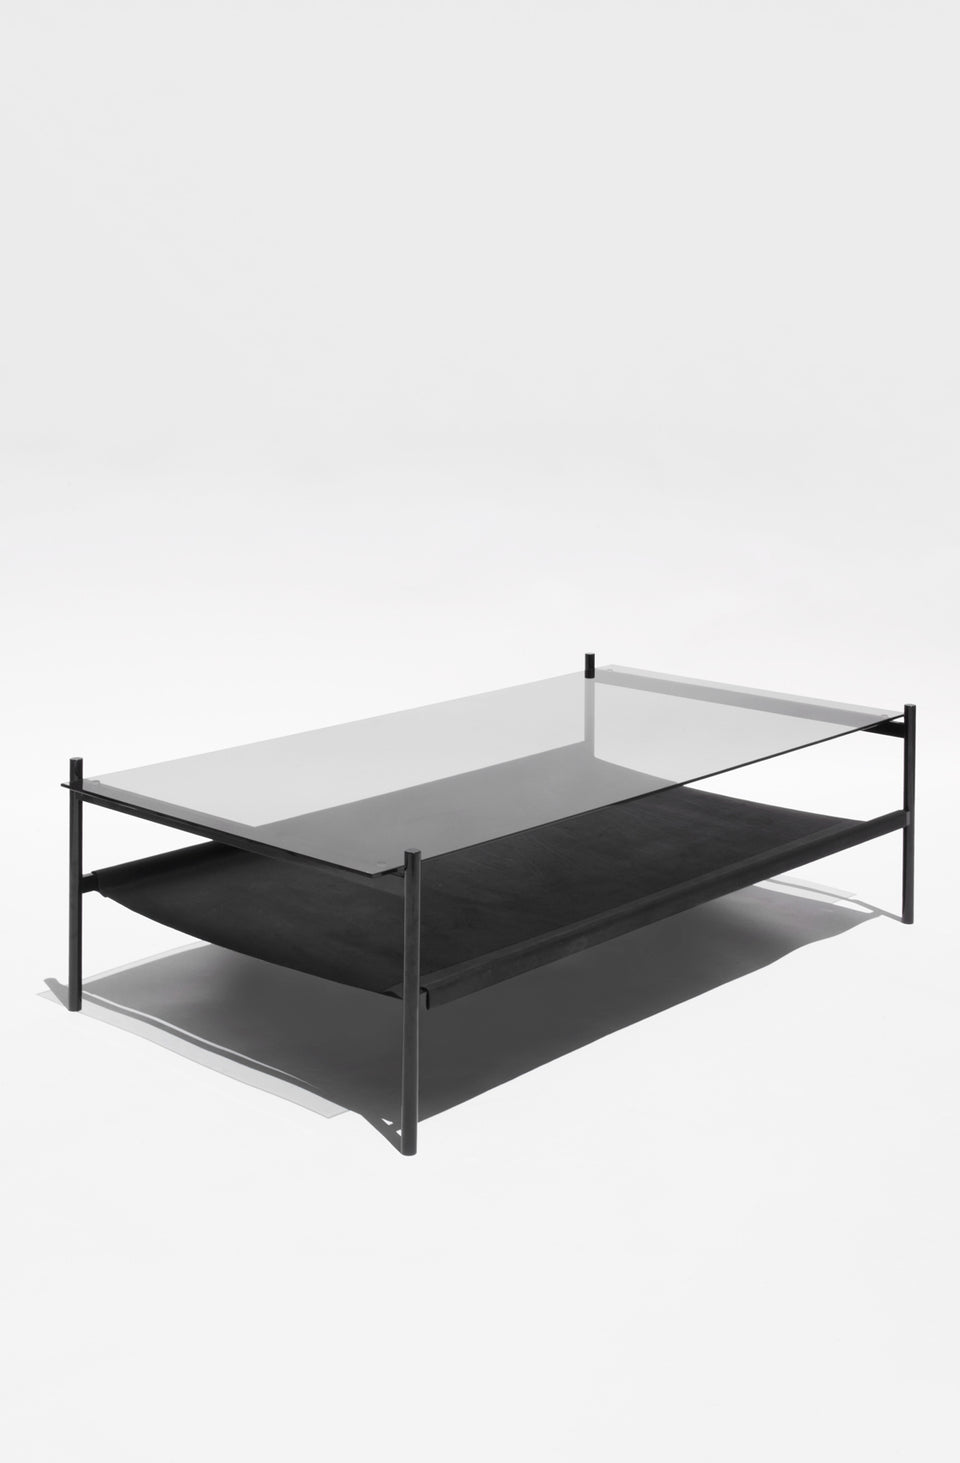 Exceptionnel Duotone Rectangular Coffee Table   Black Frame / Smoked Glass / Black  Leather